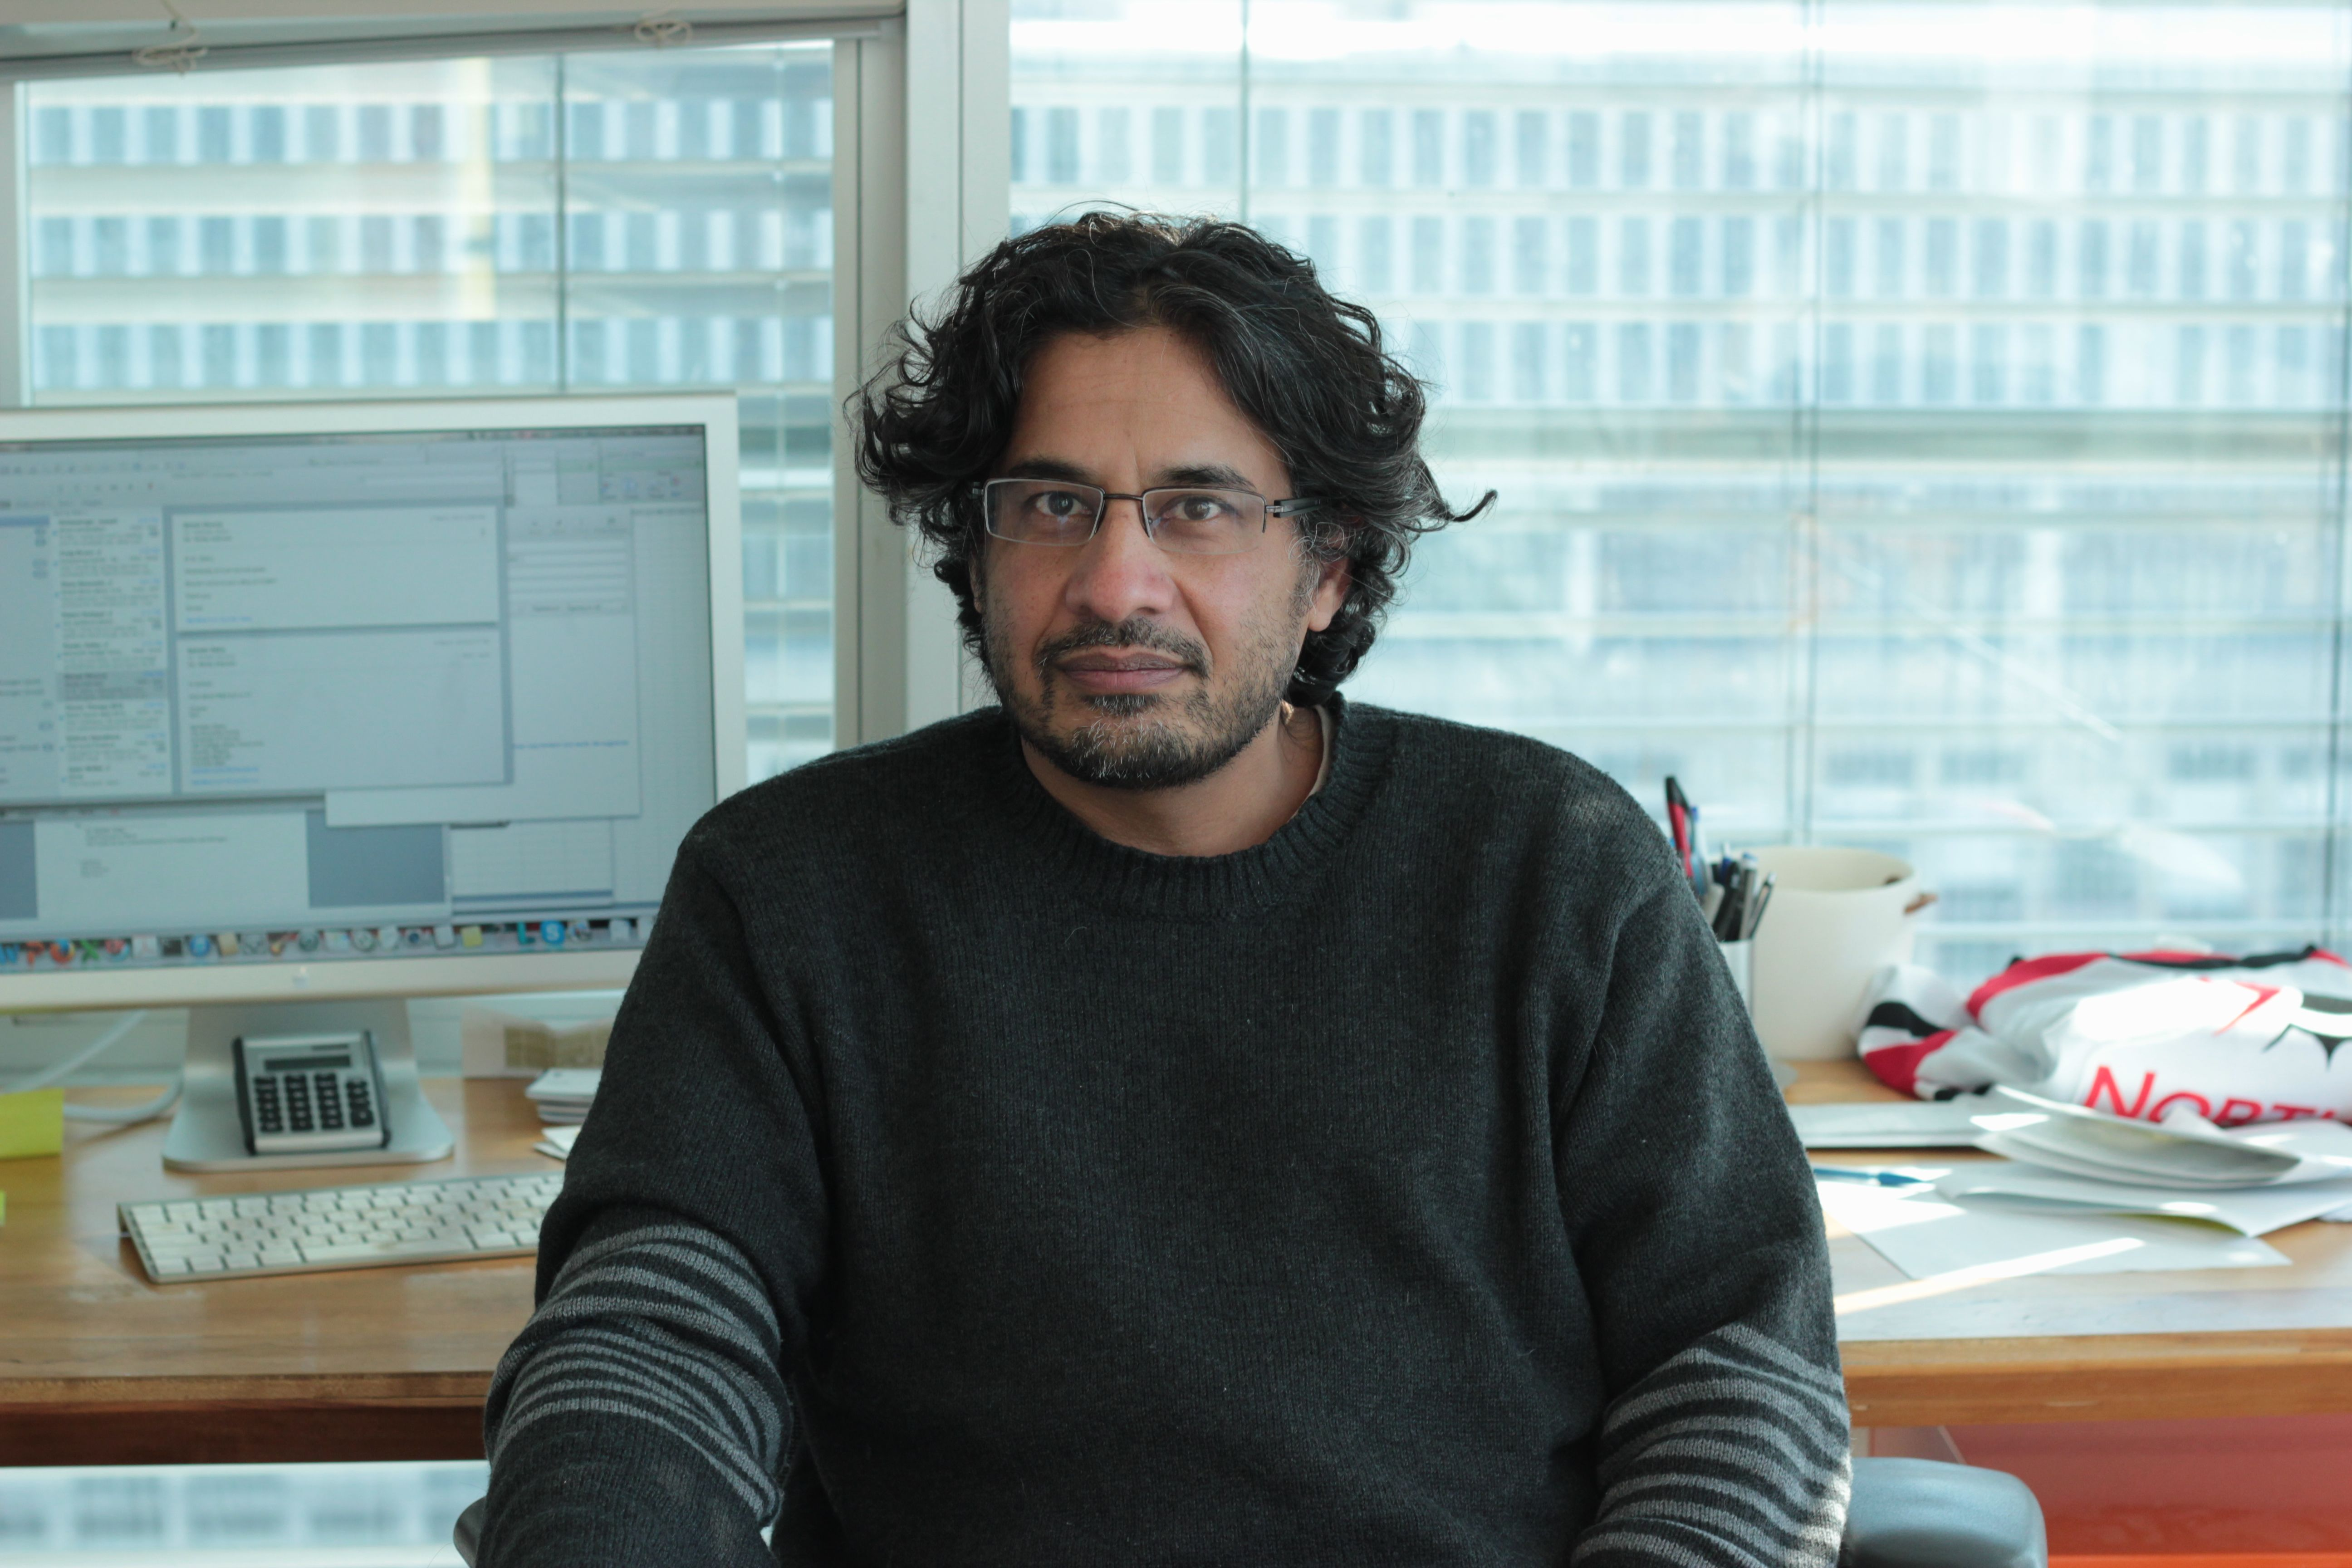 Dev Sidhu, a Professor in University of Toronto's Donnelly Centre